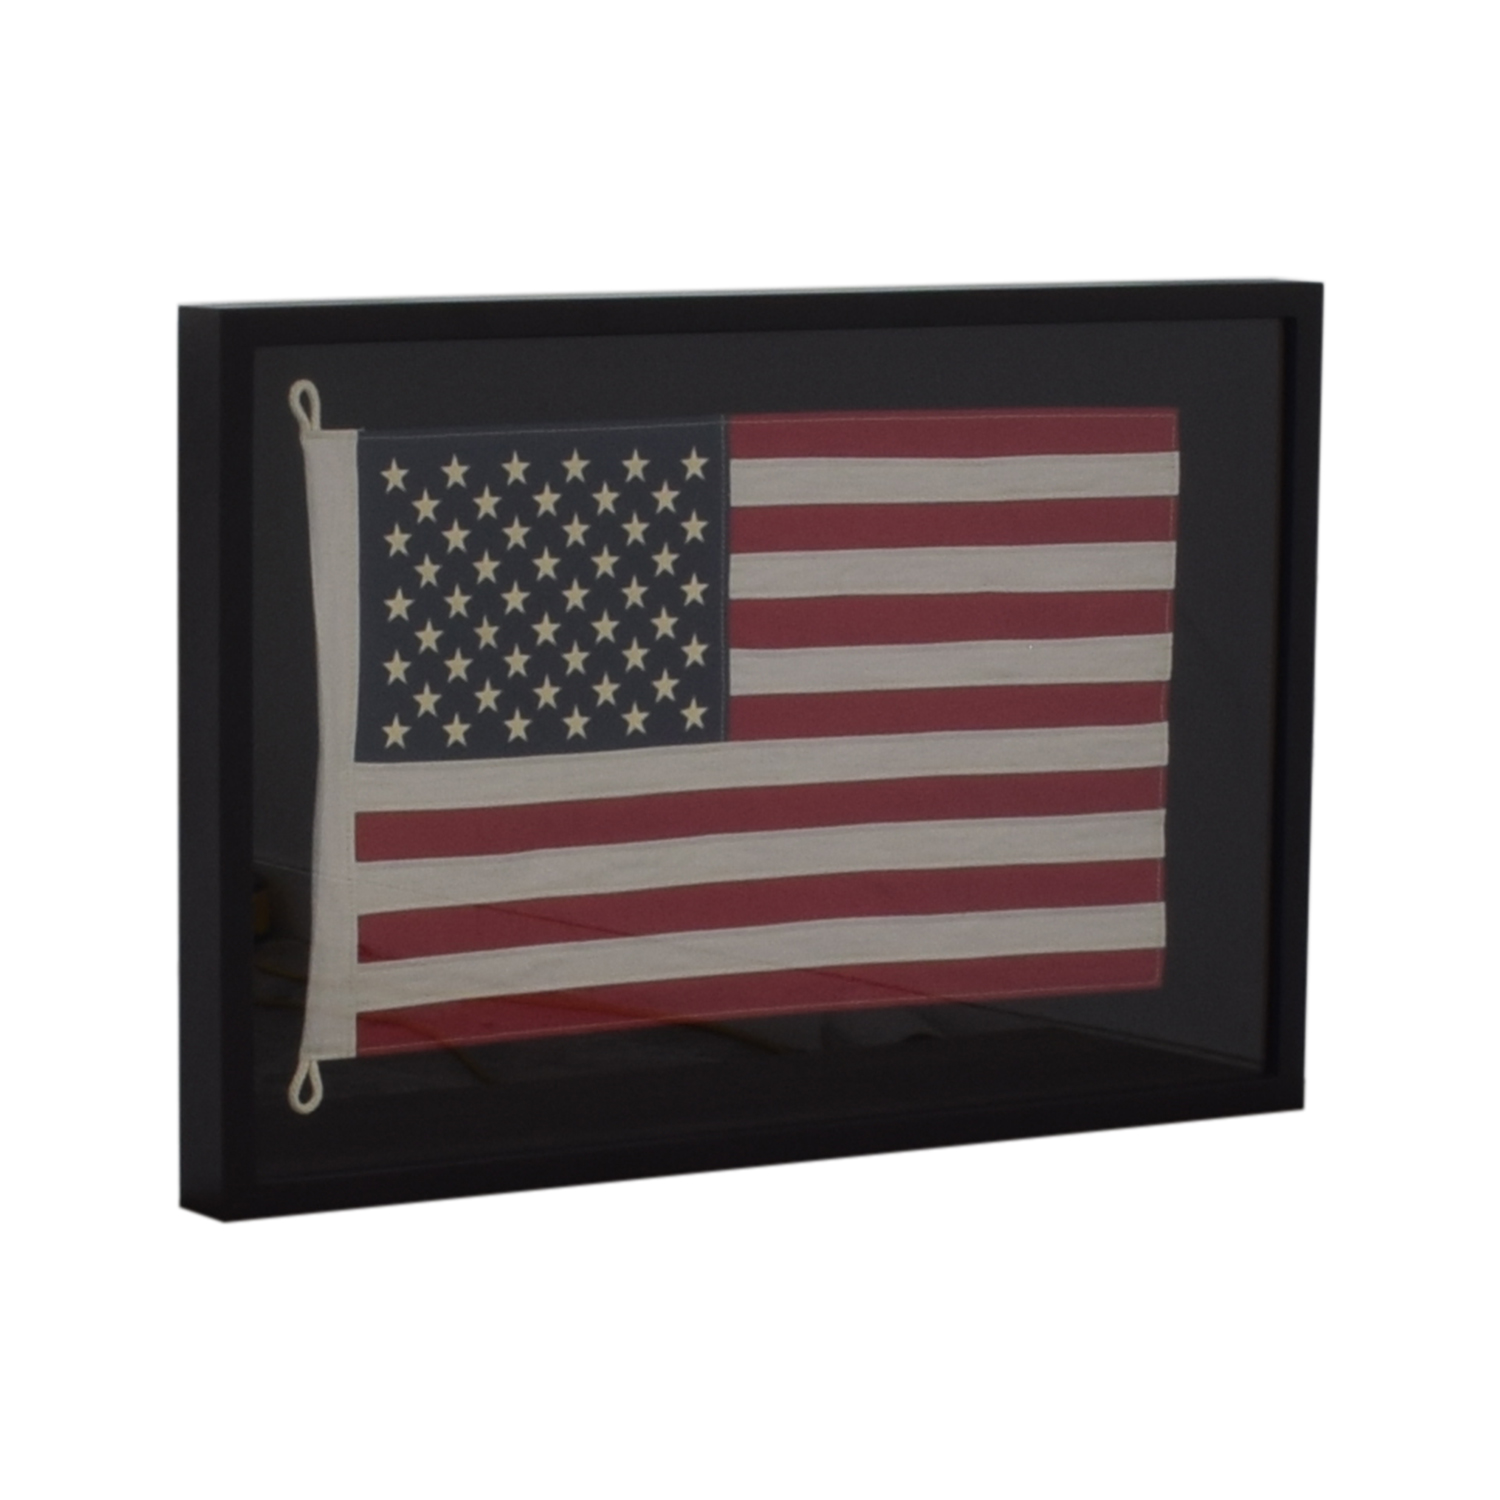 Restoration Hardware USA Framed Flag sale